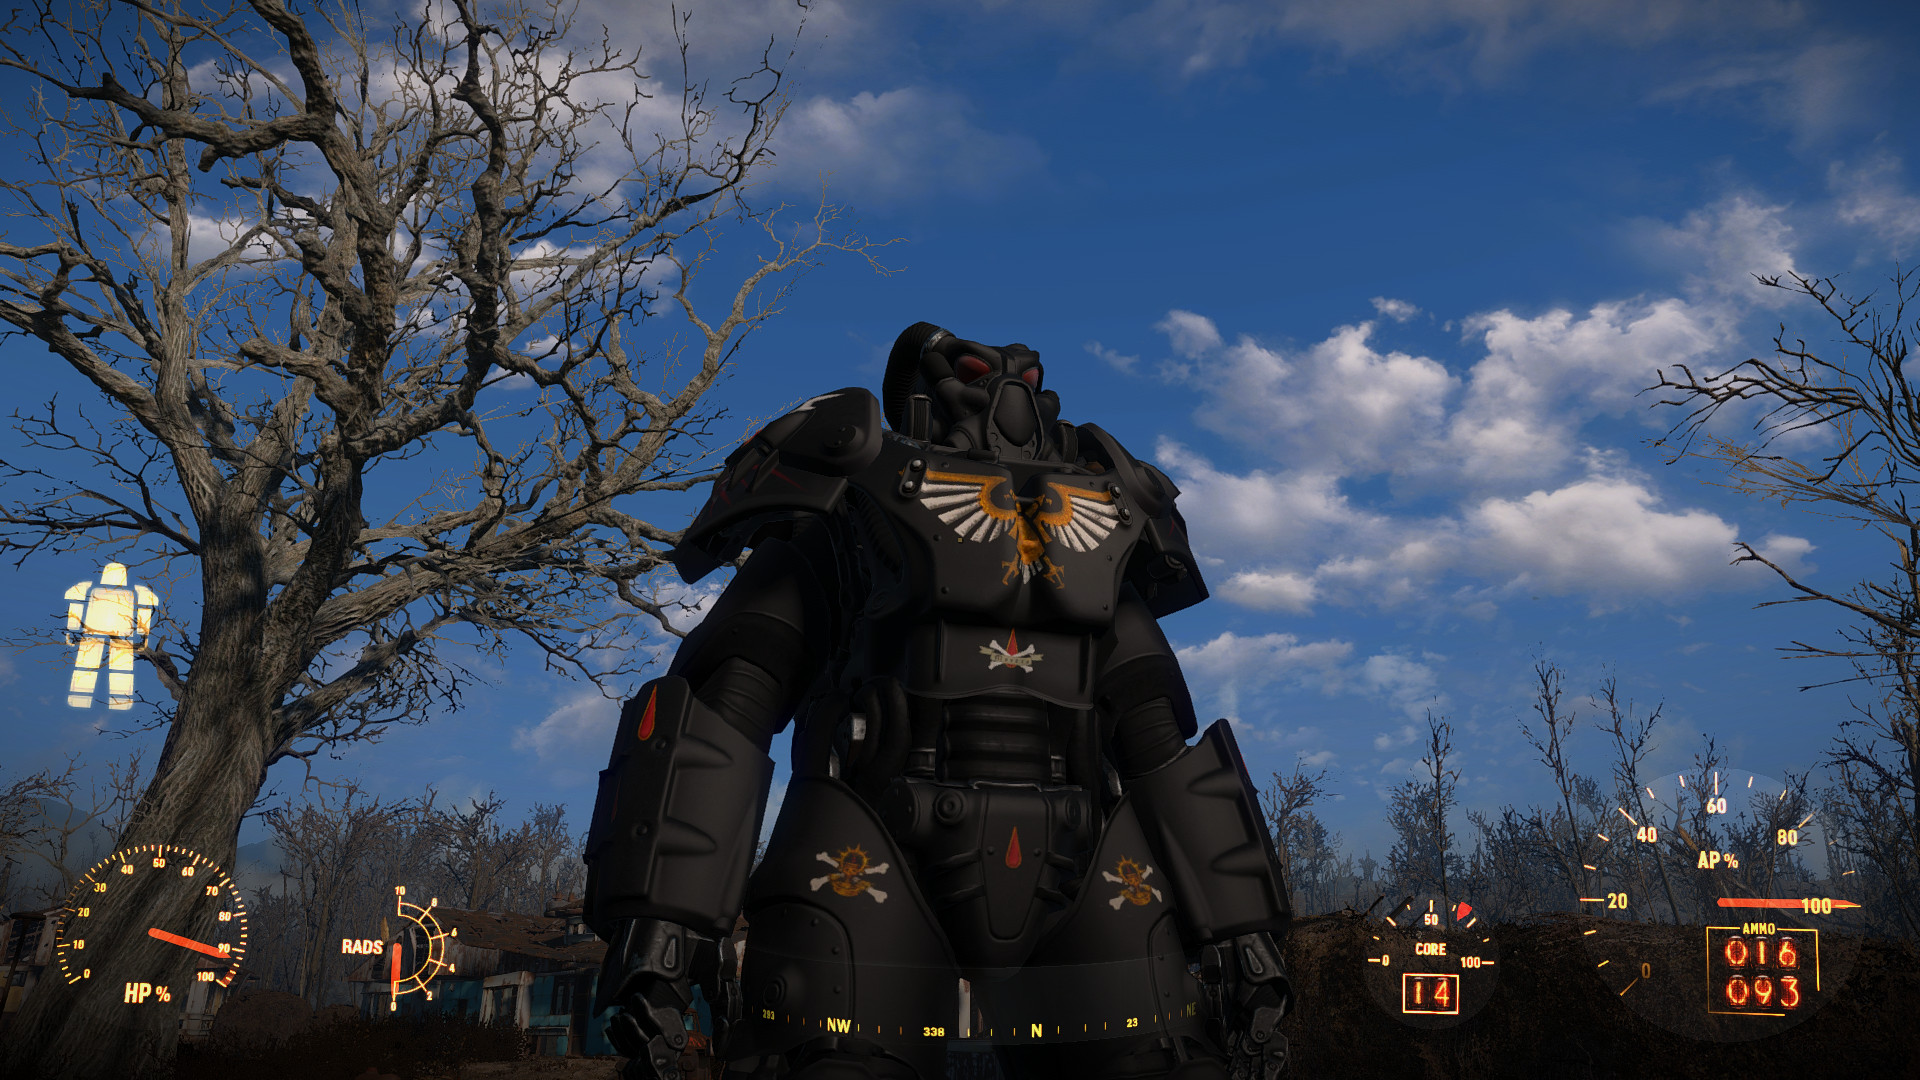 Warhammer 40k death company wallpaper - Blood Angels Death Company Space Marine Power Armour Paint Standalone At Fallout 4 Nexus Mods And Community